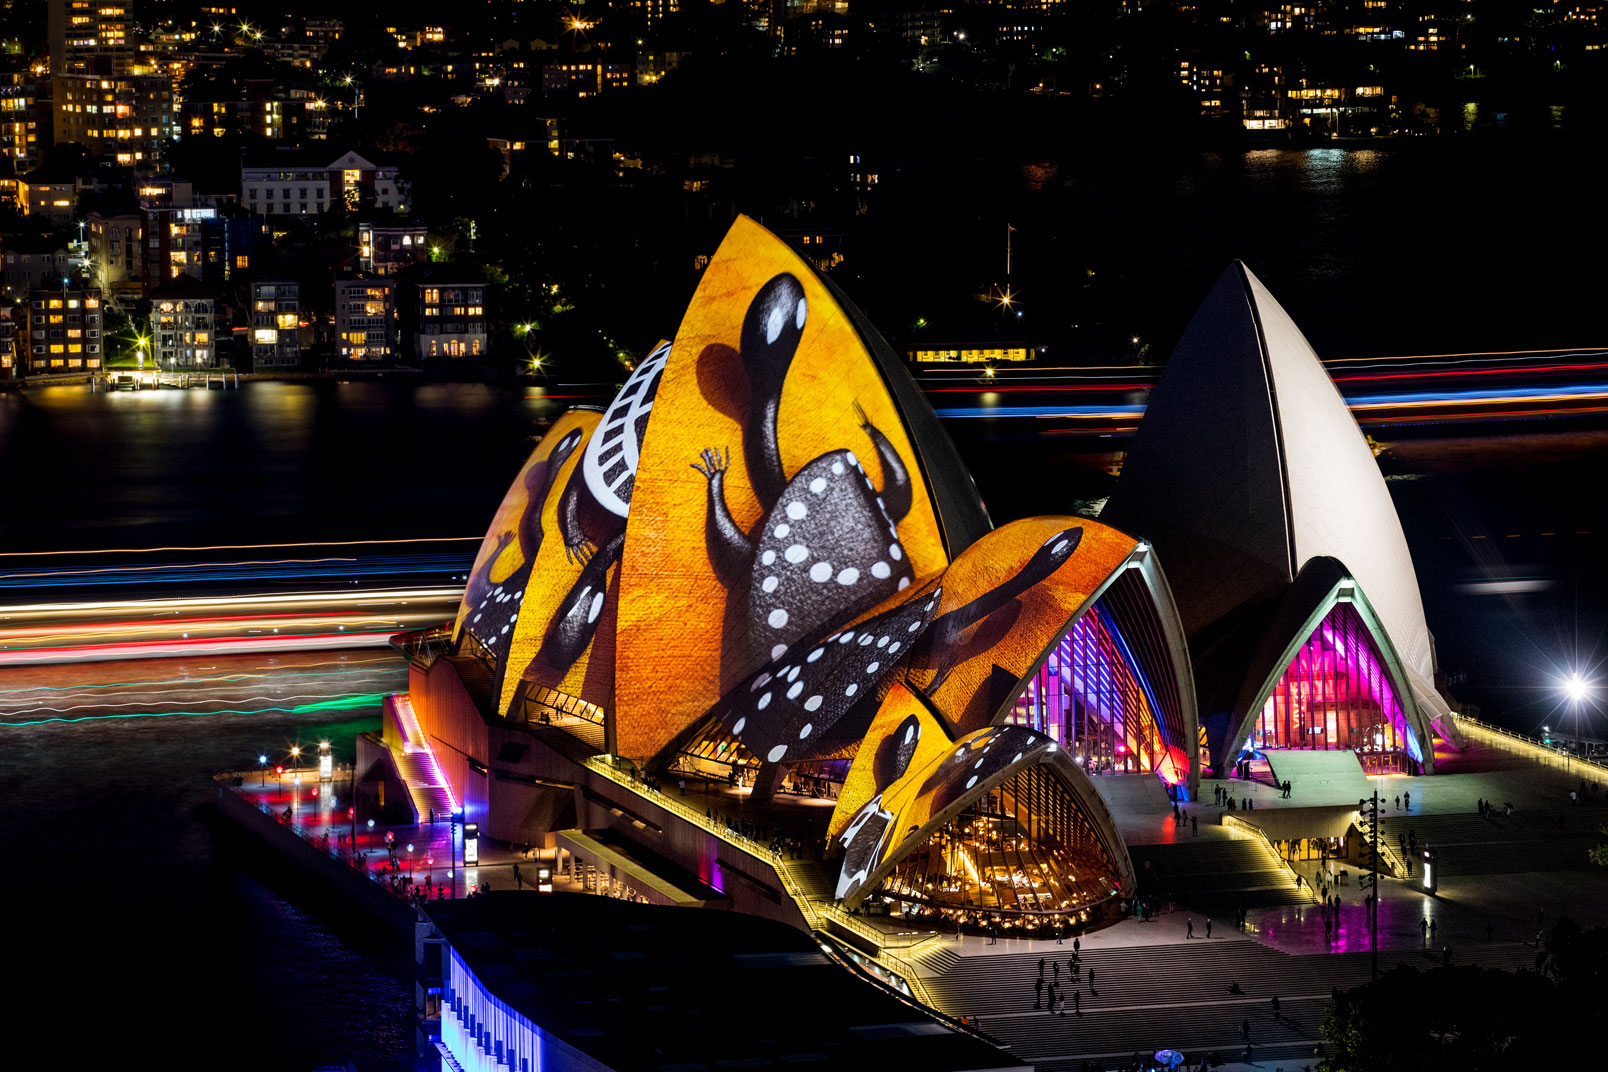 Vivid-Sydney-2016_opening-night_Clr-Quay_Lighting-The-Sails_Songlines_CREDIT-Destination-NSW_JH-002